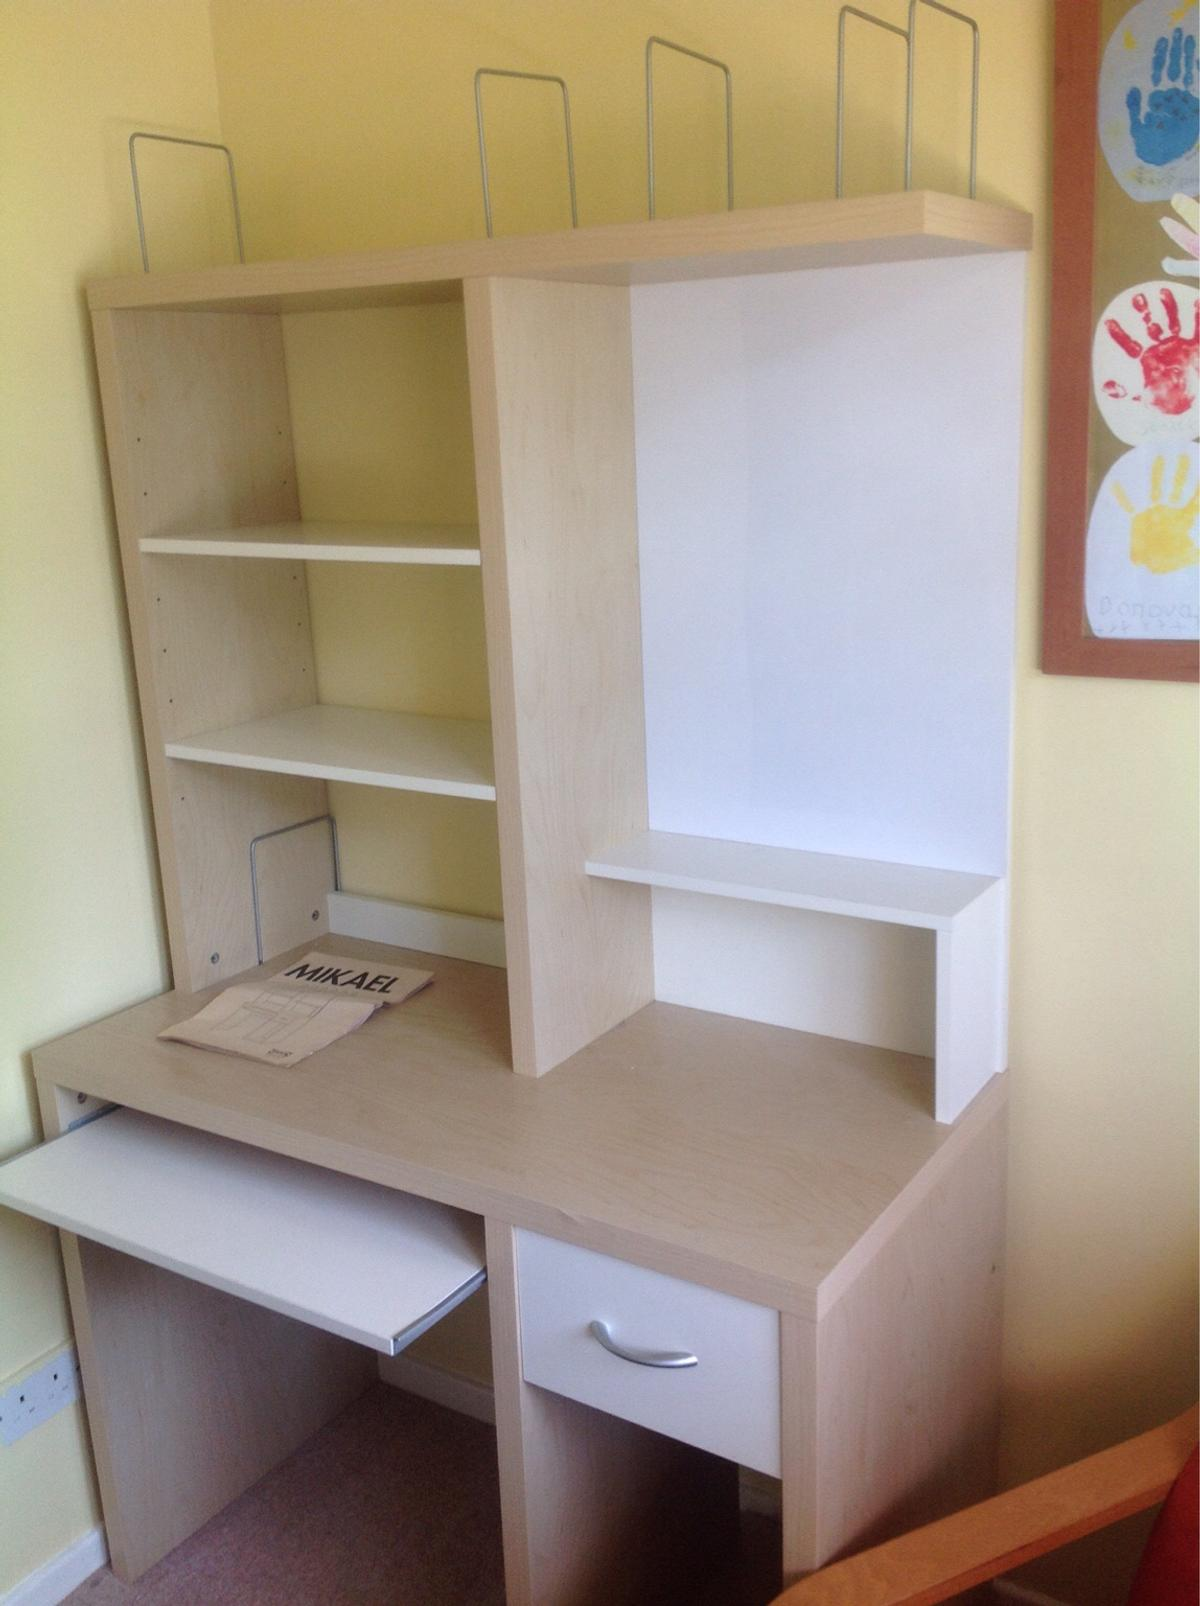 Ikea Mikael Desk Office Unit In Sm7 Banstead For 25 00